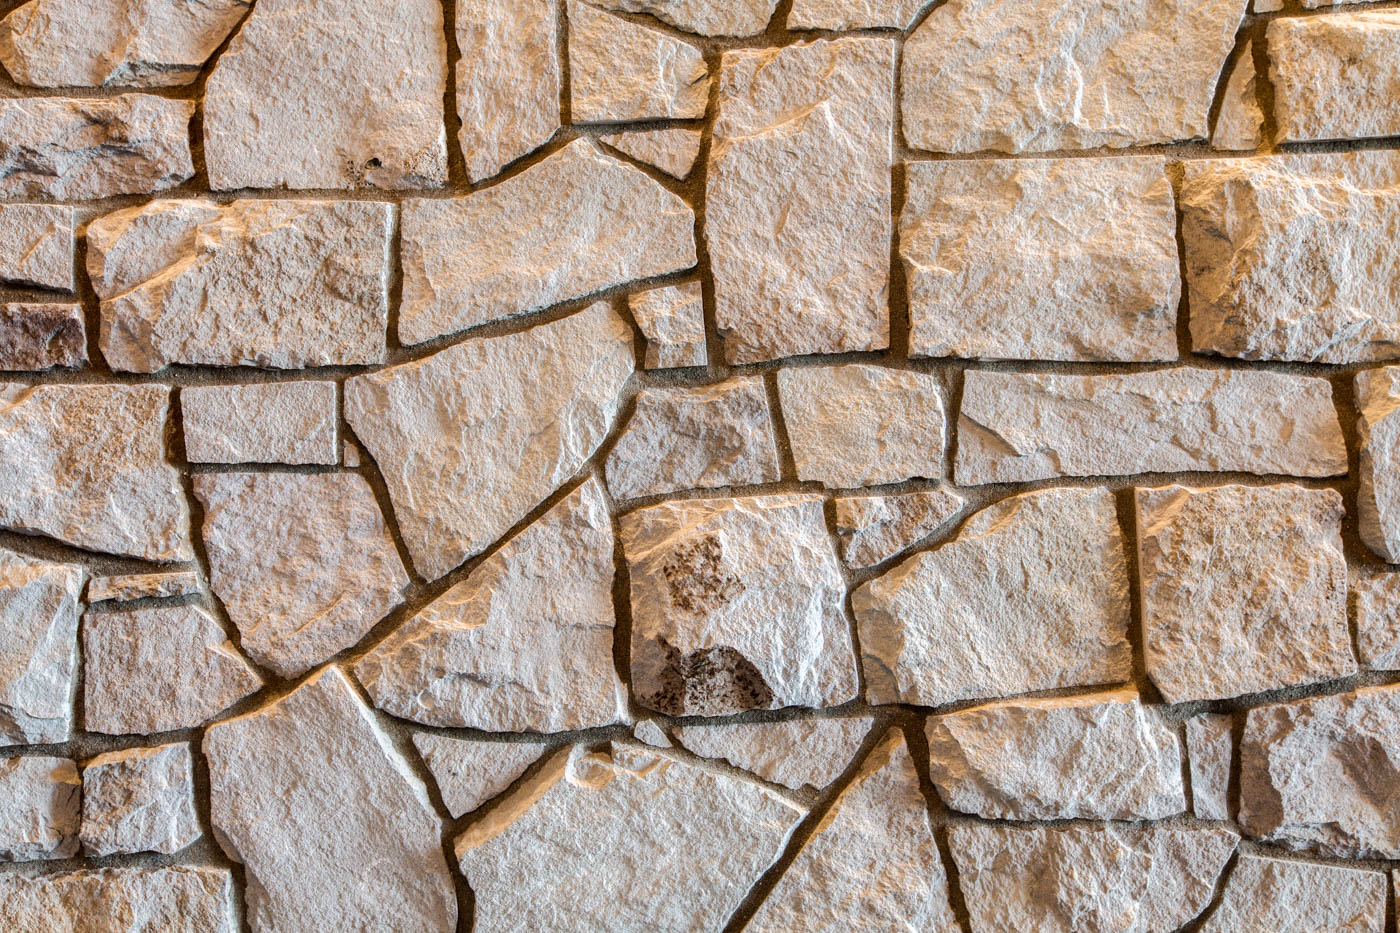 entrance_rock-wall_18010-s-ramsby-rd_058_webres